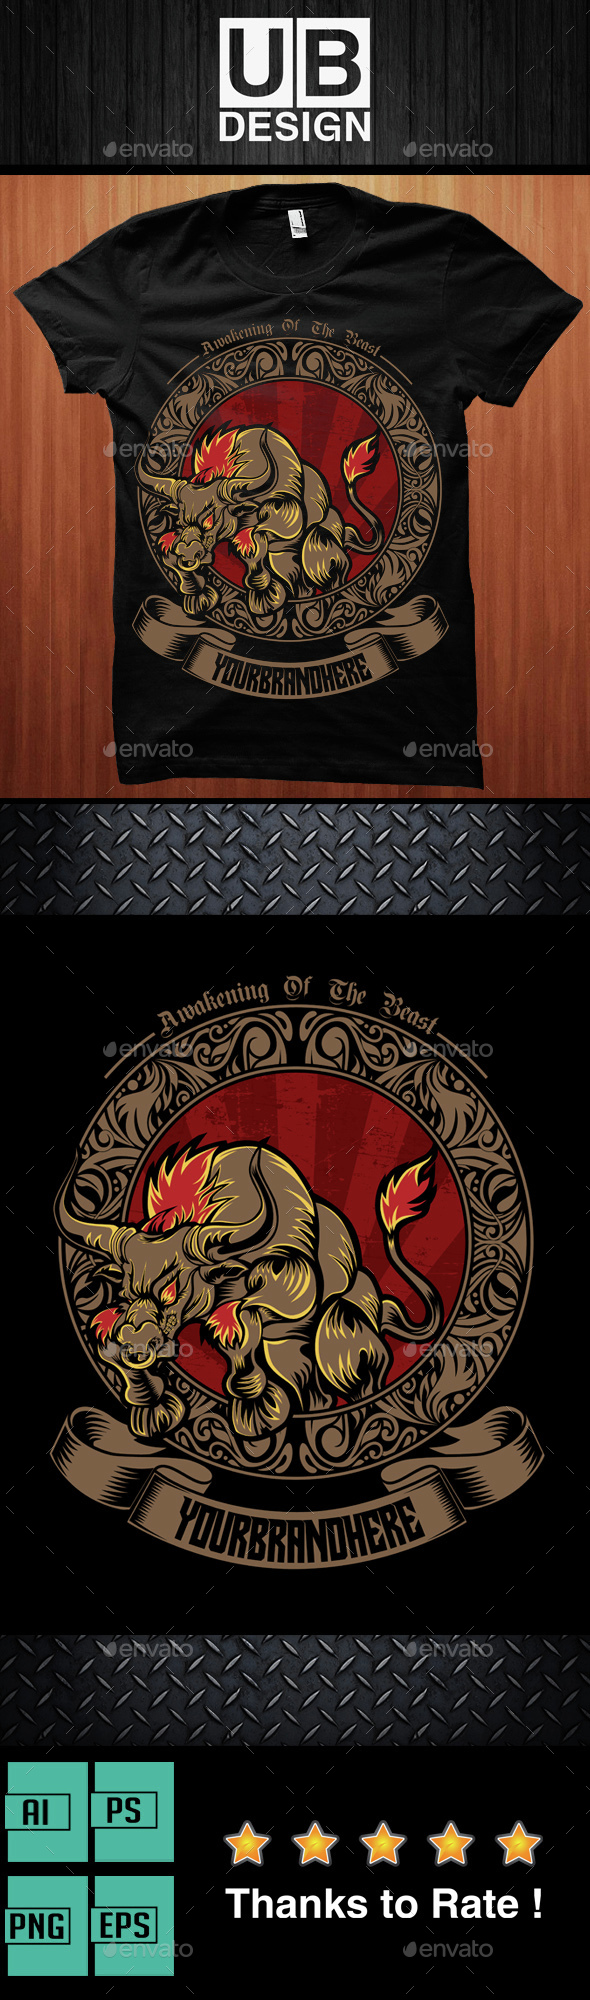 Awakening Of The Beast Illustration - Grunge Designs